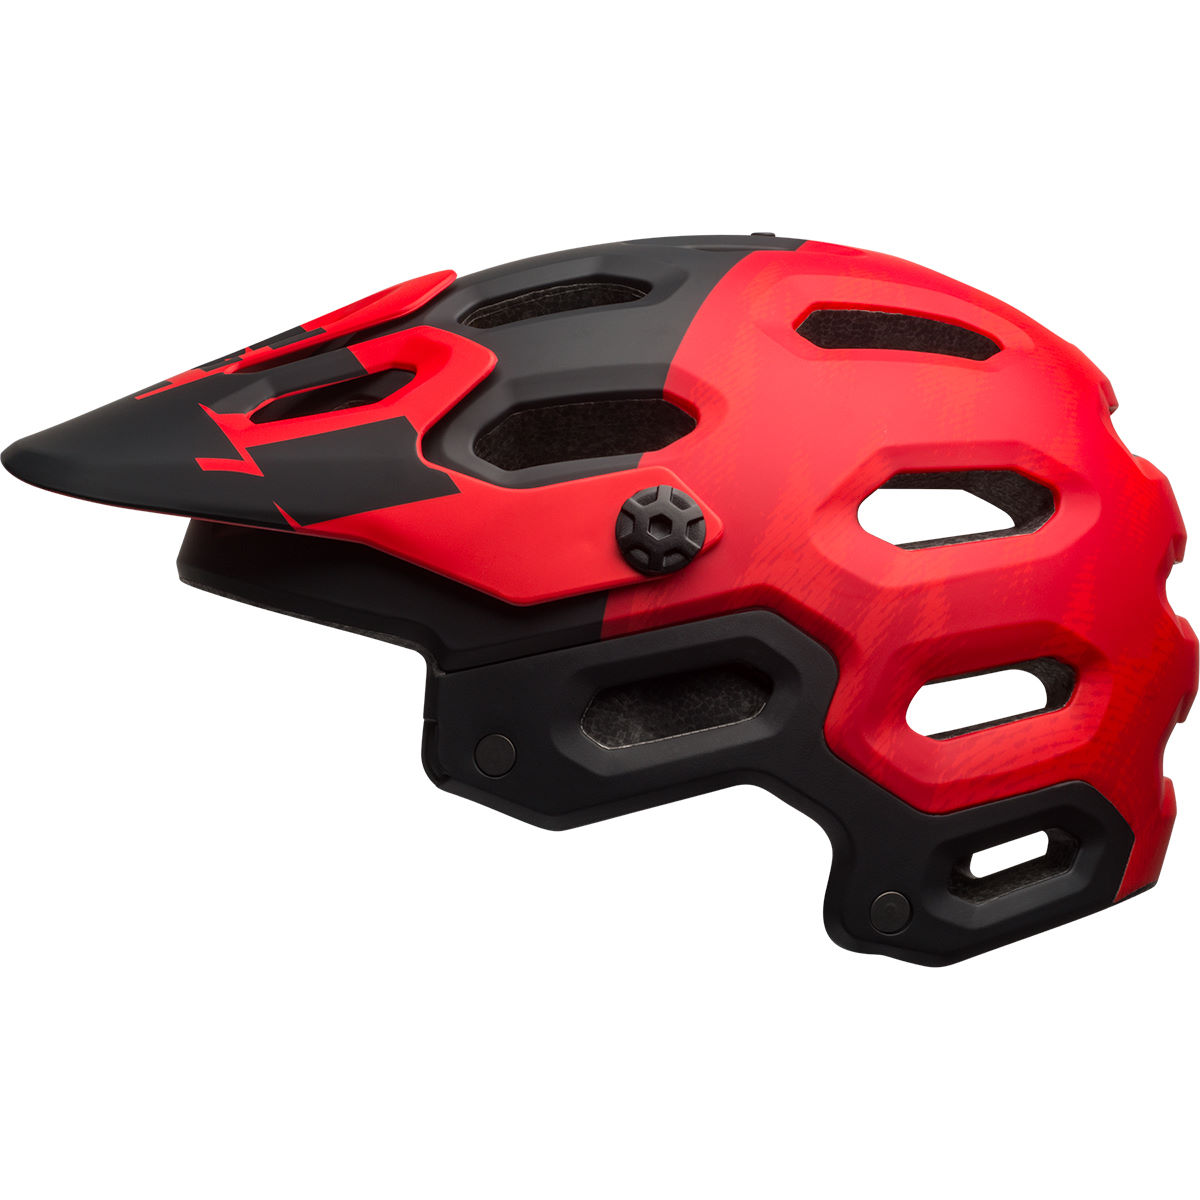 Casque Bell Super 3 - S Matte Red/Marsala/Bl Casques VTT